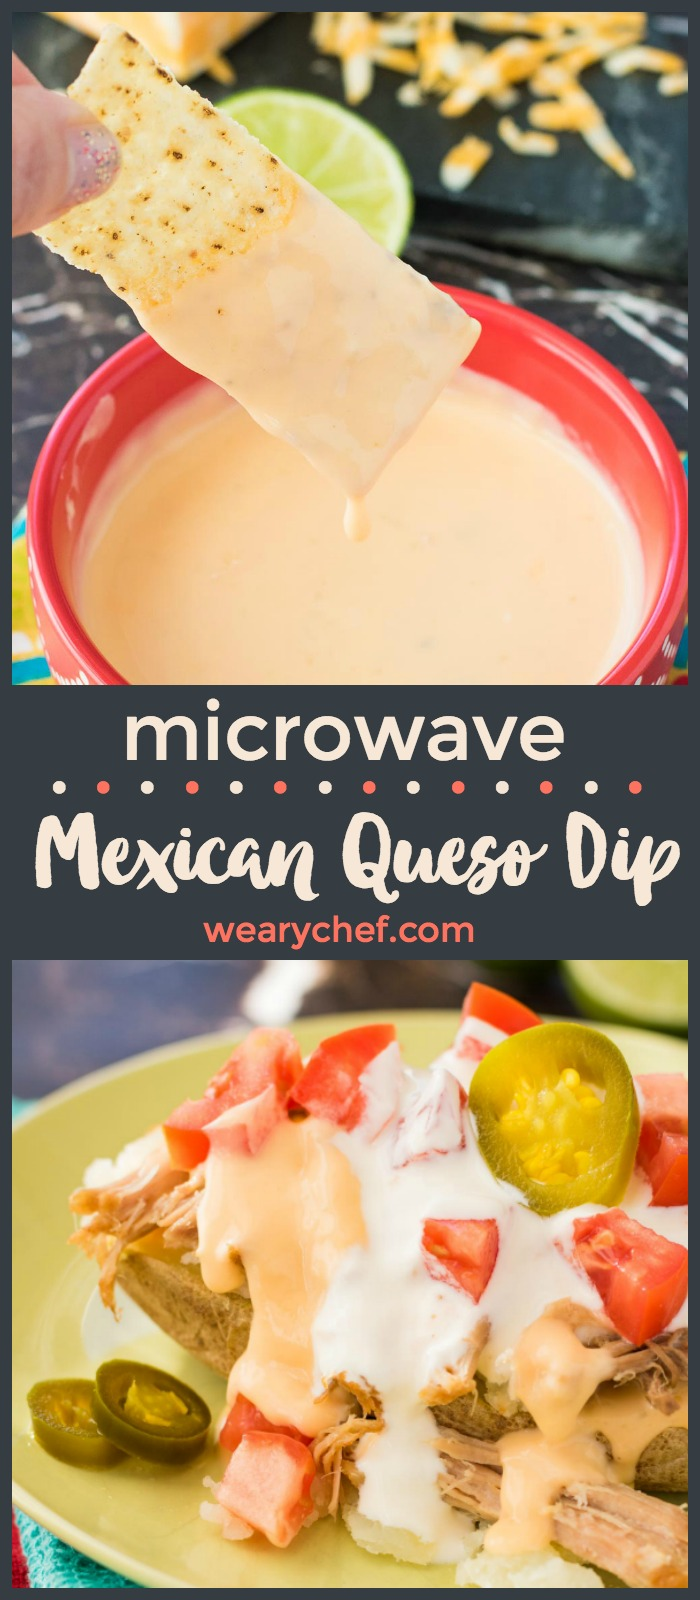 Microwave Mexican Queso Dip is easy to make and PERFECT drizzled over carnitas loaded baked potatoes!